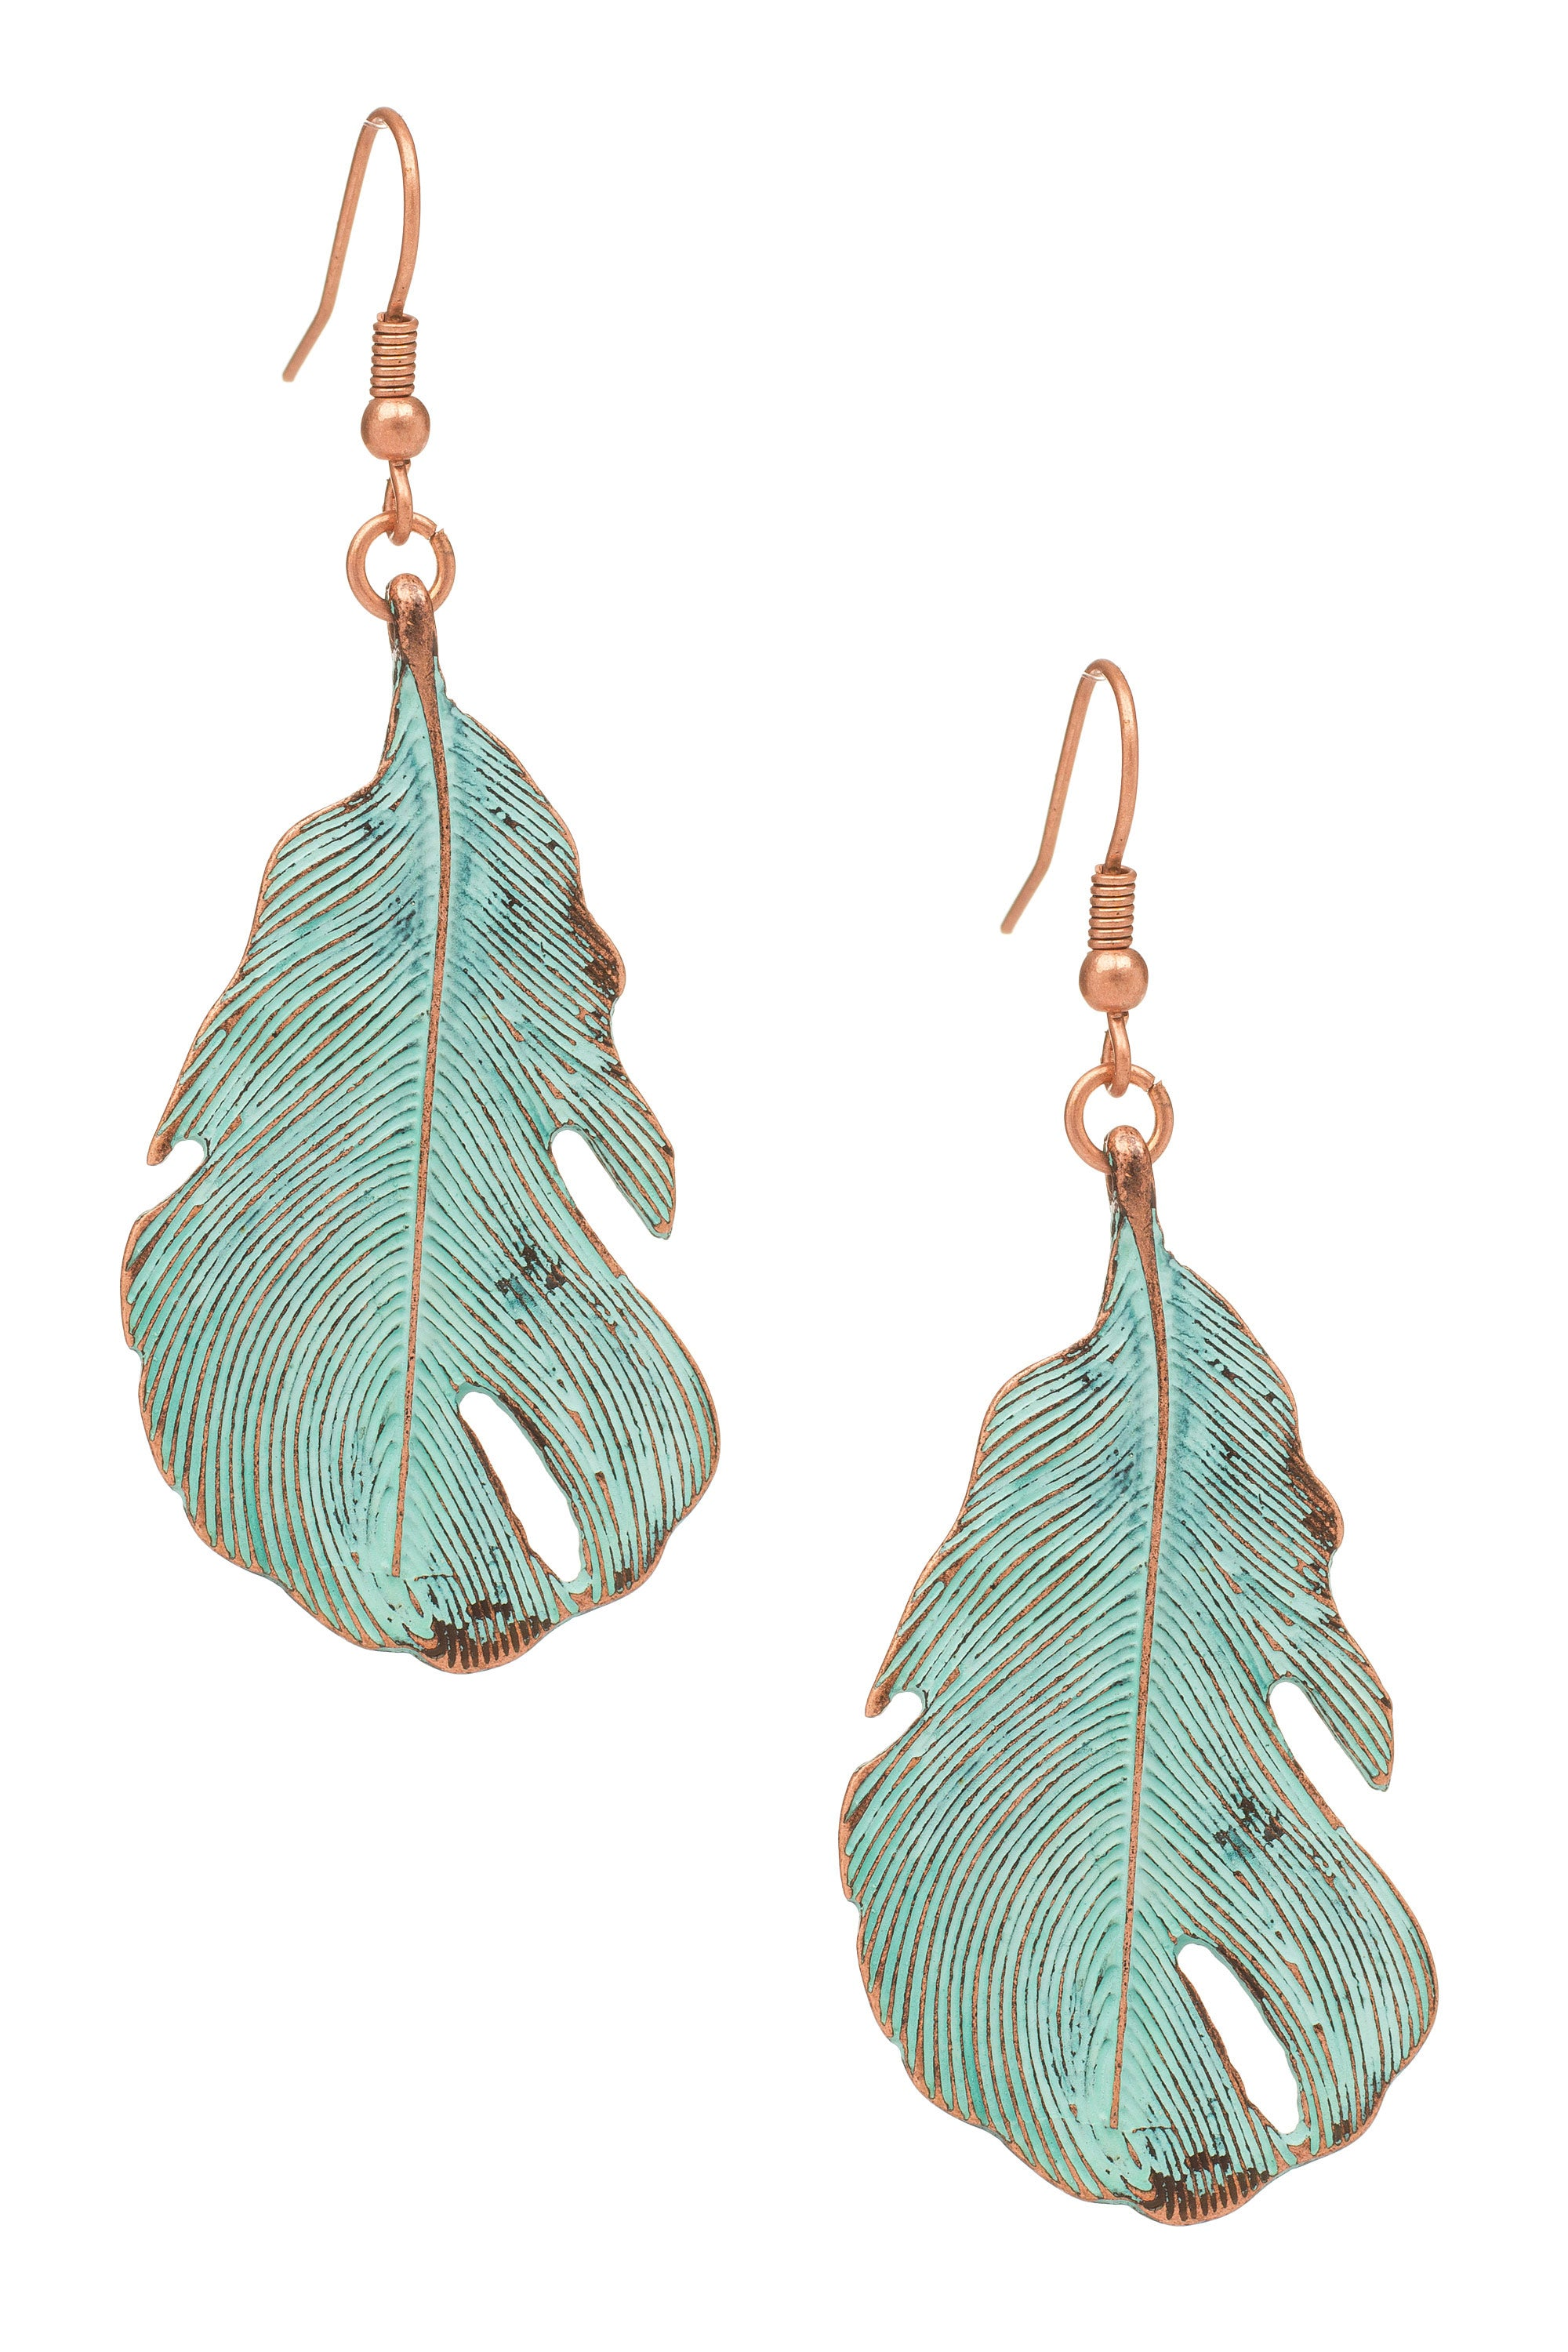 Type 3 Light as a Feather Earrings